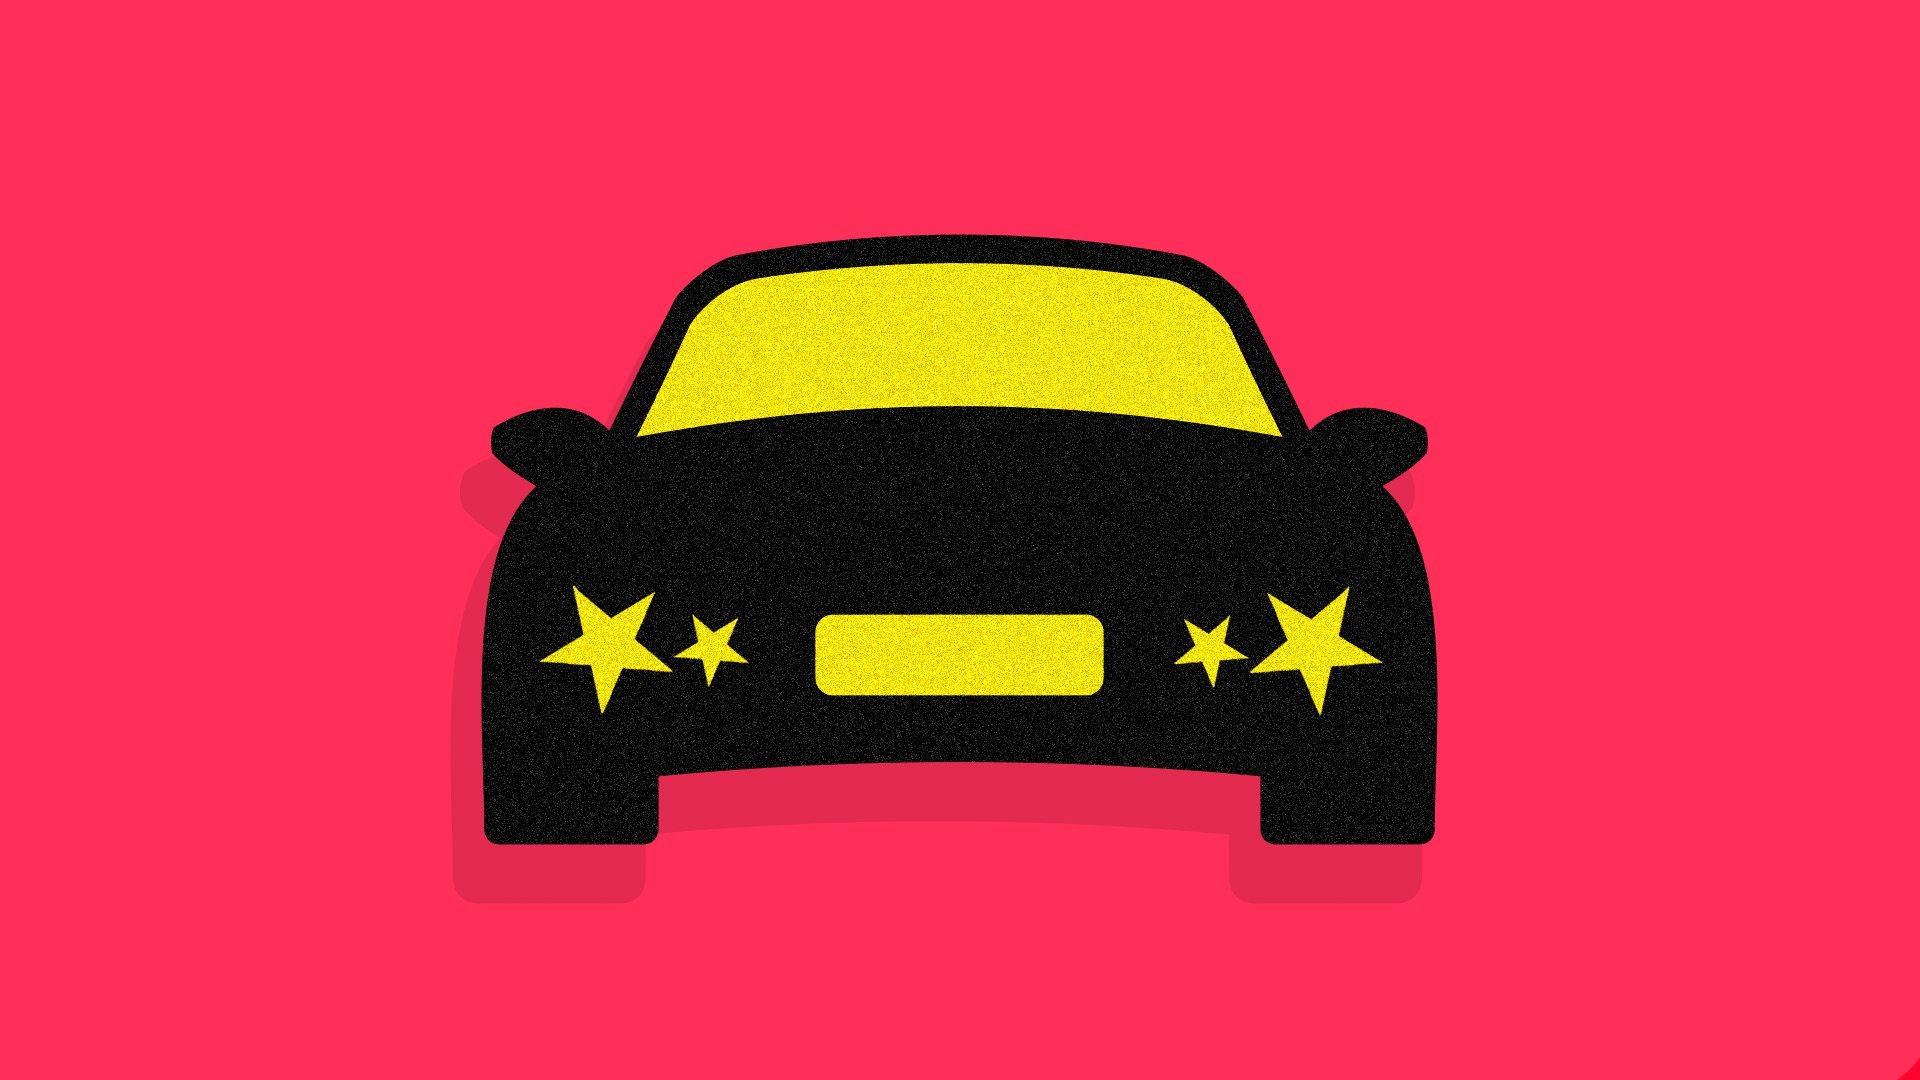 A black illustrated car with yellow stars for headlights against red backdrop (like Chinese flag)